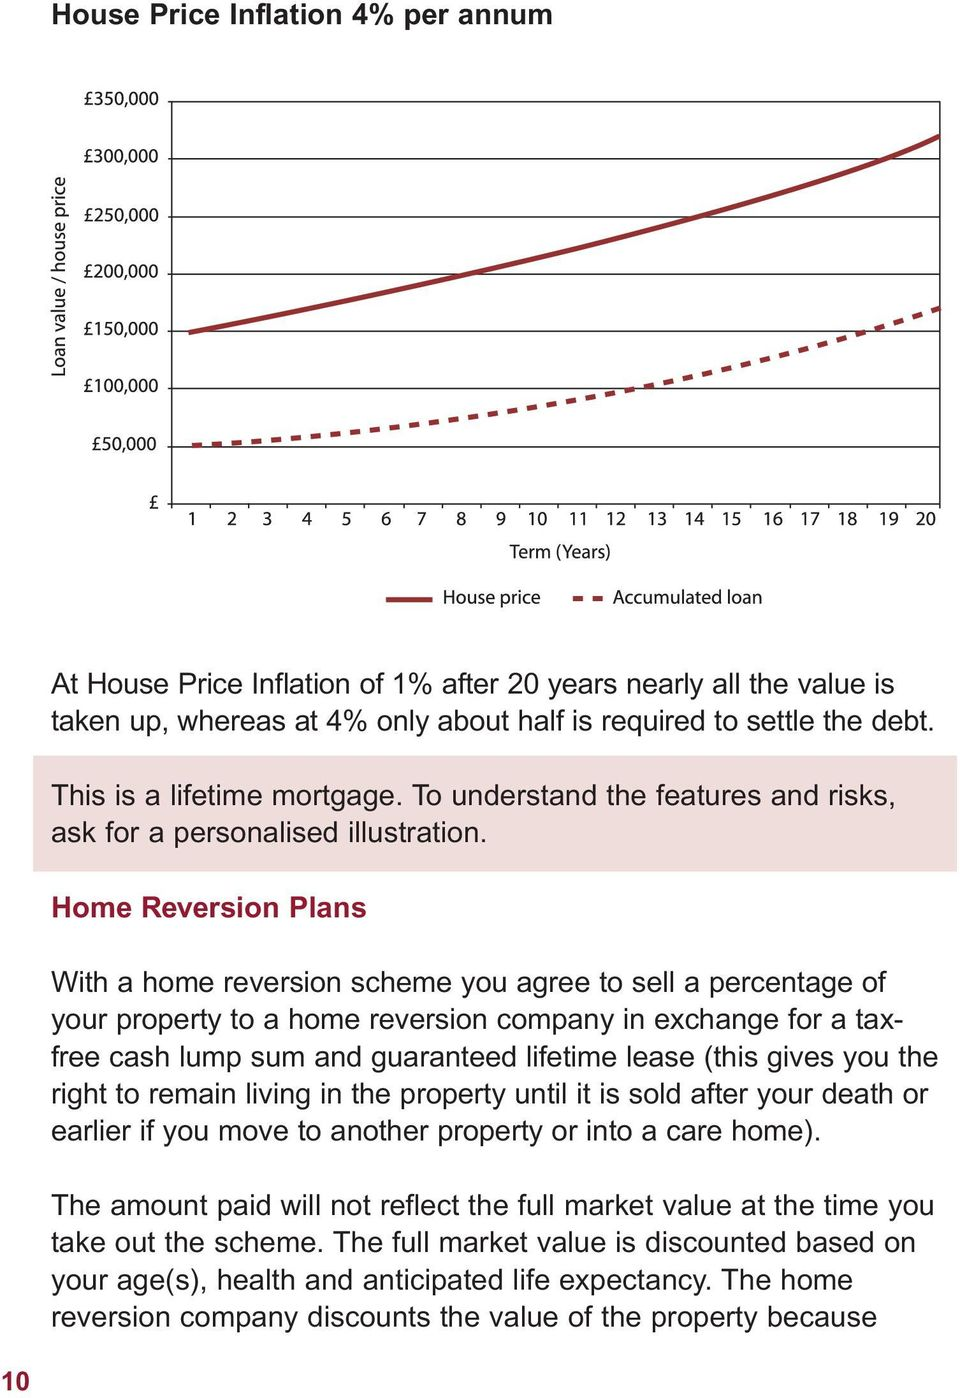 Home Reversion Plans With a home reversion scheme you agree to sell a percentage of your property to a home reversion company in exchange for a taxfree cash lump sum and guaranteed lifetime lease